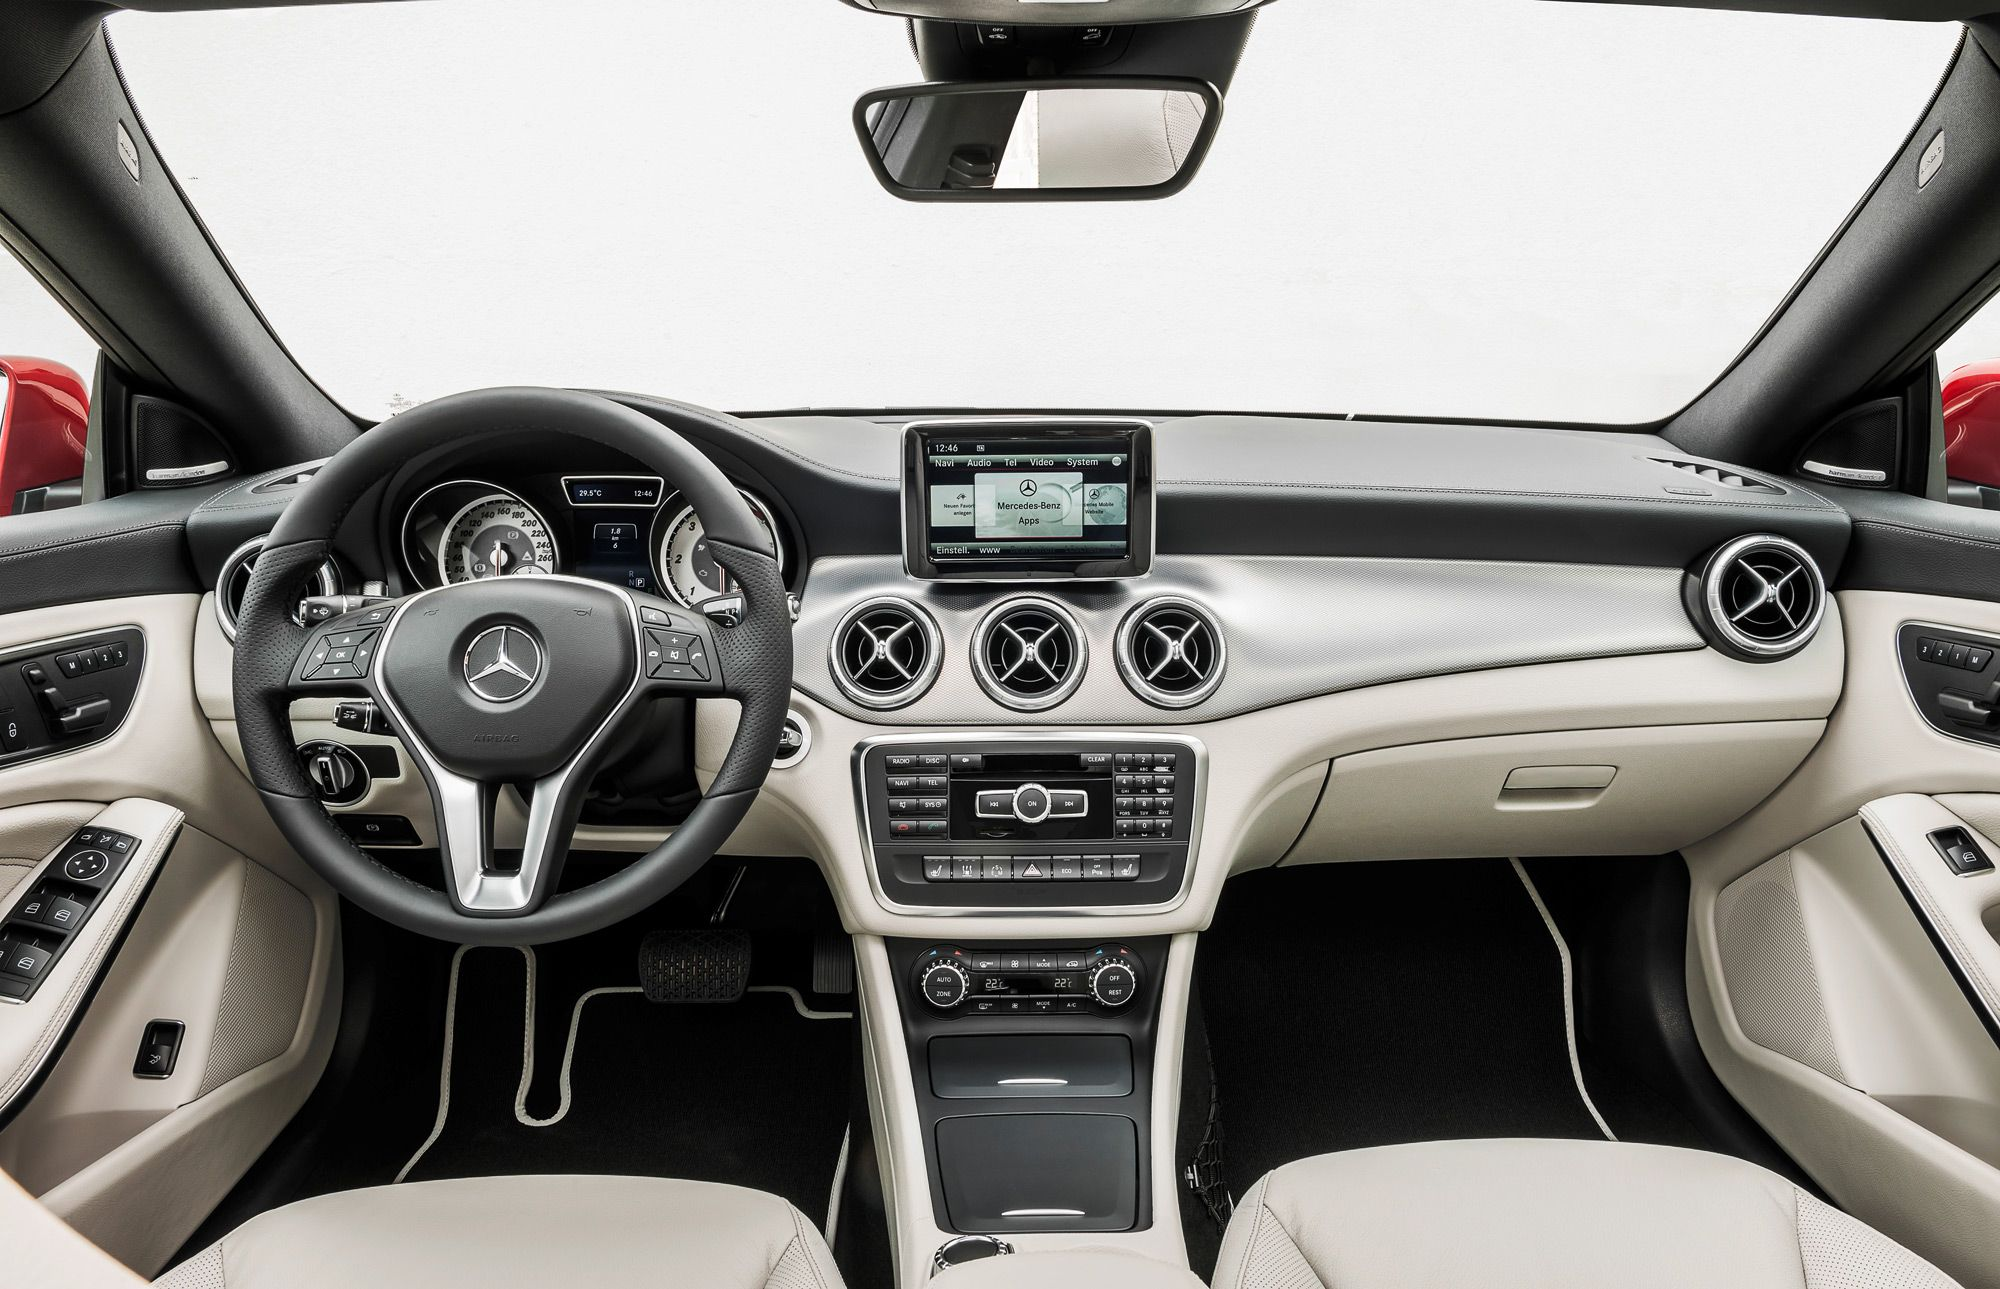 Superb Nice Mercedes Cla Black Interior Car Images Hd Mercedes Benz Cla Interior  12689 Hd Wallpapers In Cars Imagesci